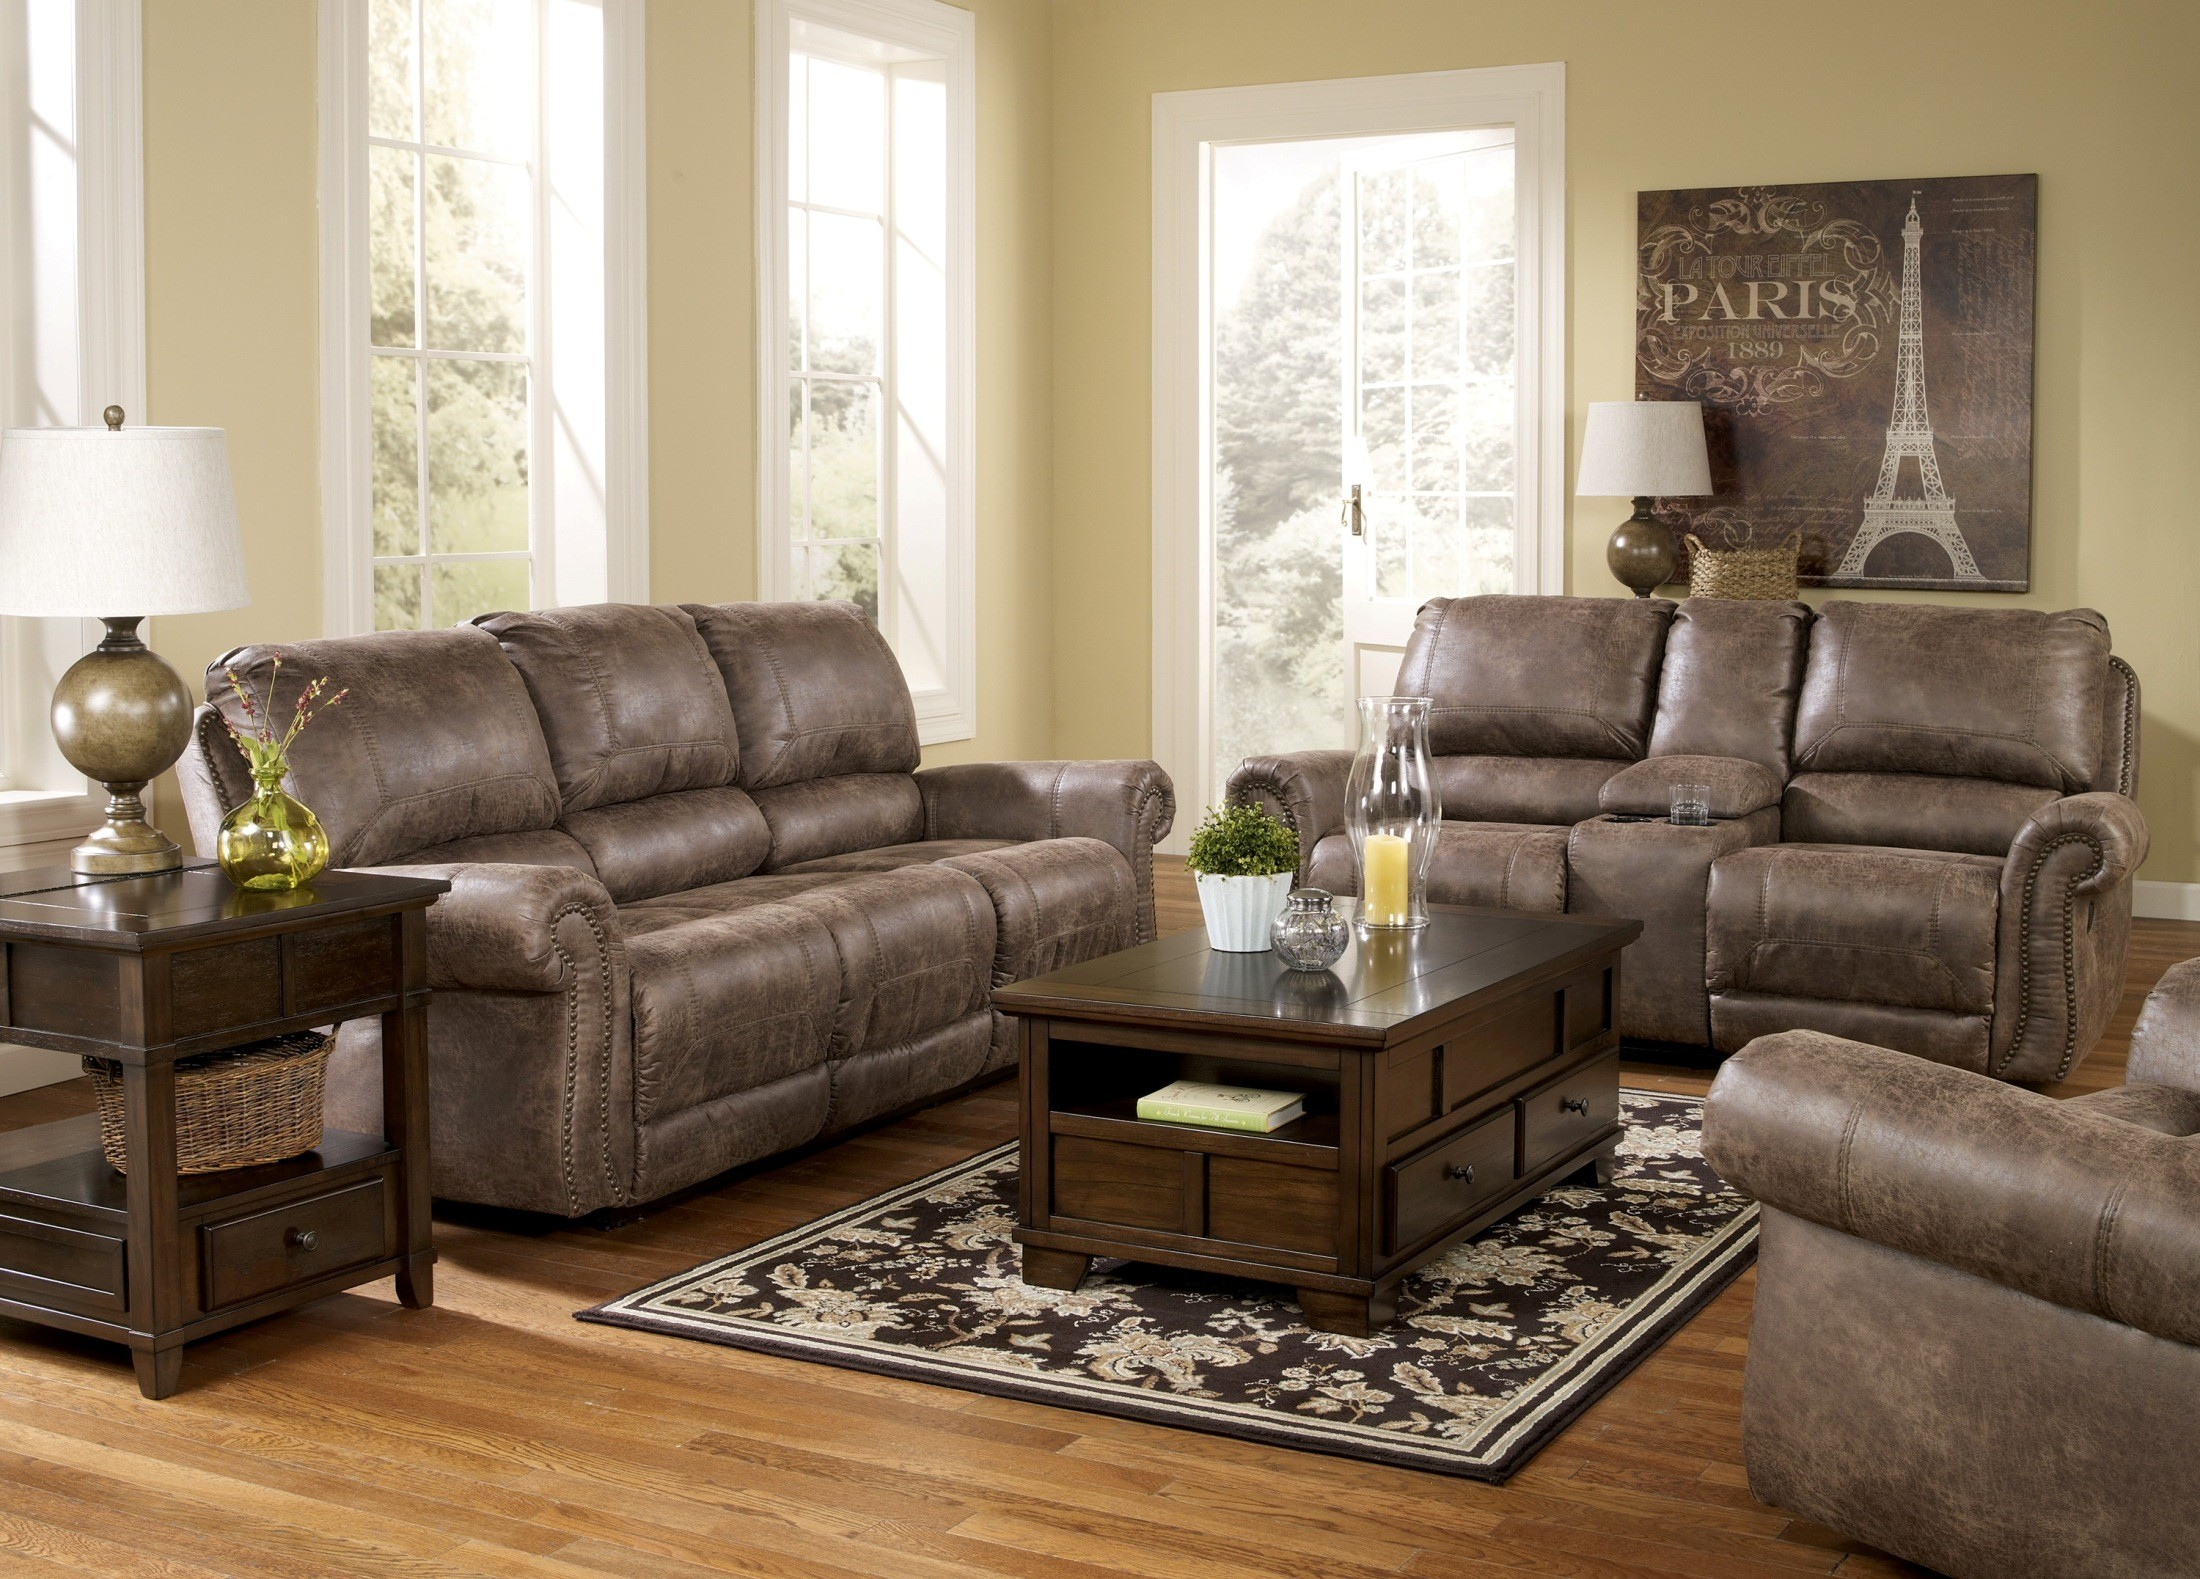 Oberson Gunsmoke Reclining Sofa from Ashley